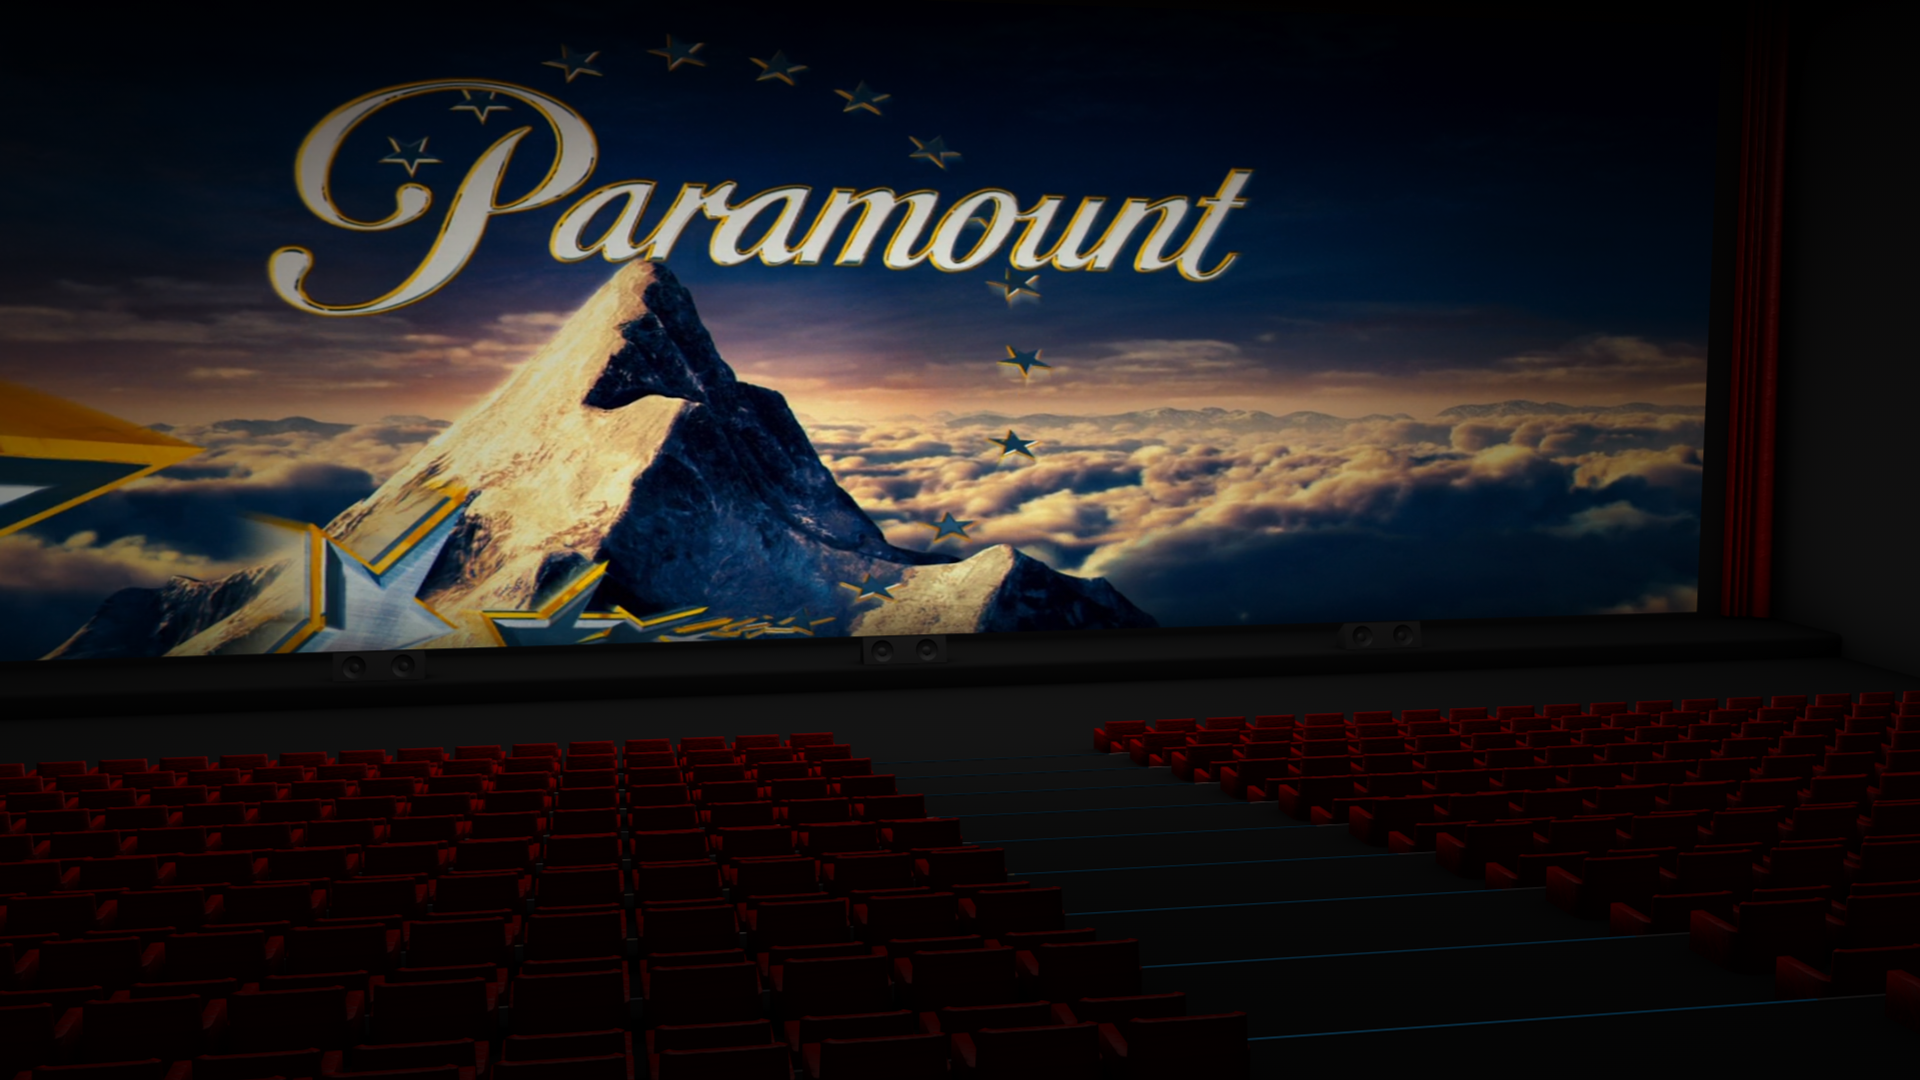 xbmc movies 1080p by rayspoint on deviantart